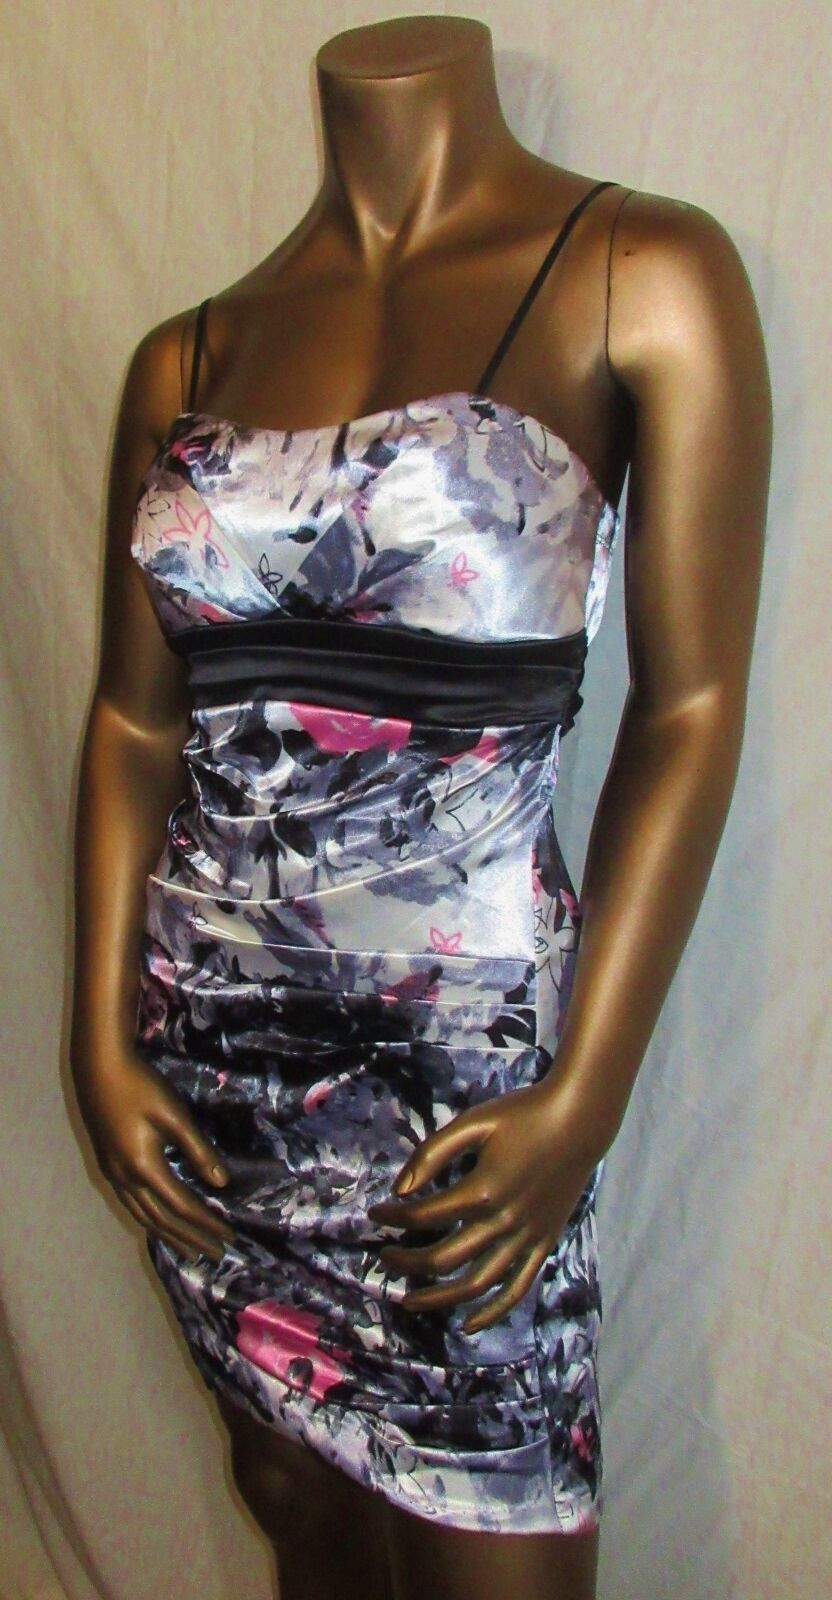 WINDSOR, PARTY, SPECIAL OCCASSION, PROM, SWEET 16 SHEAT DRESS - Größe 7